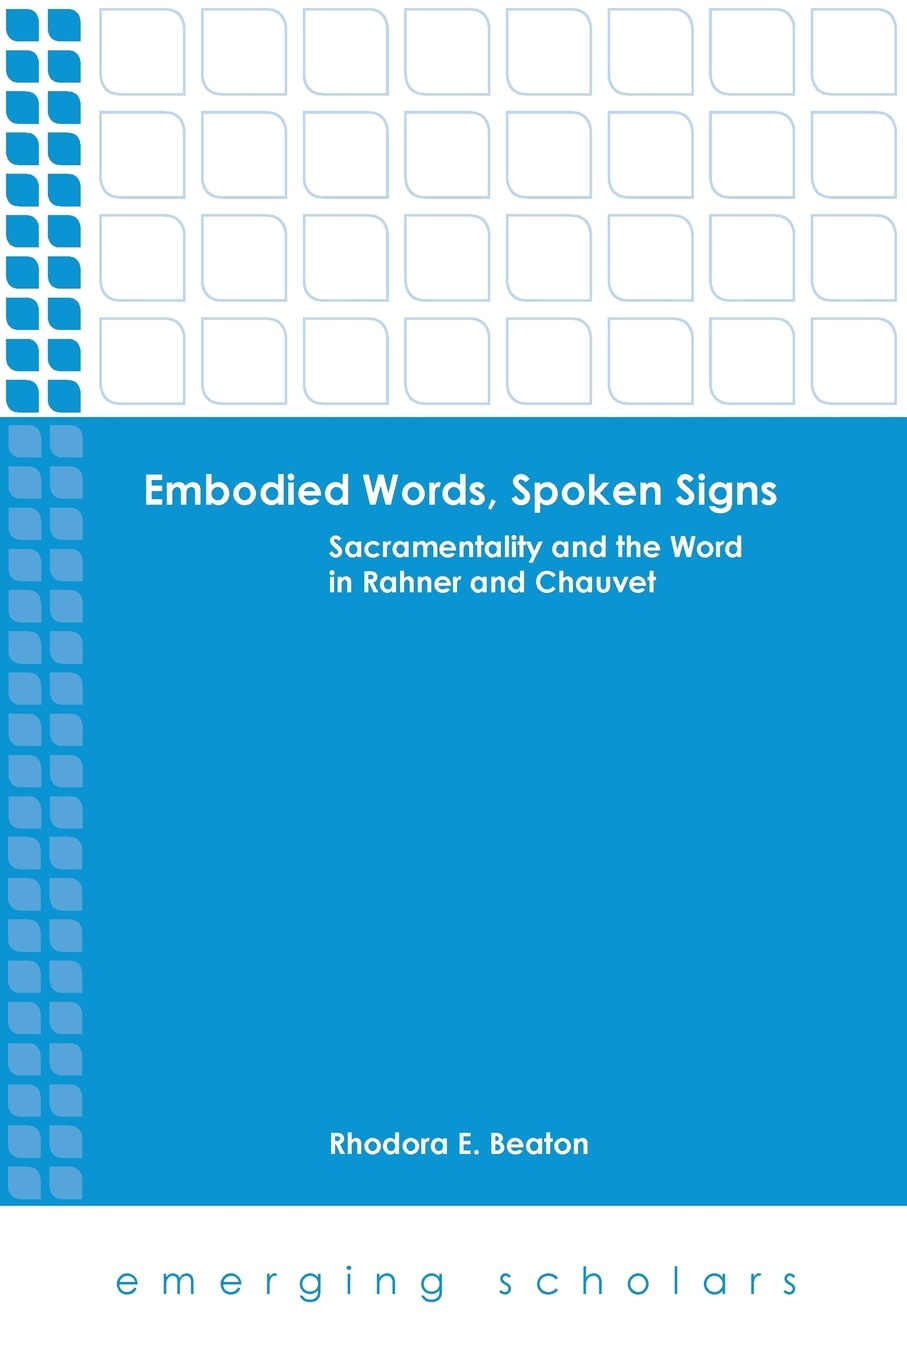 Mary Gaebler, Rhodora E. Beaton Embodied Words, Spoken Signs. Sacramentality and the Word in Rahner and Chauvet chauvet pro rogue r1 wash